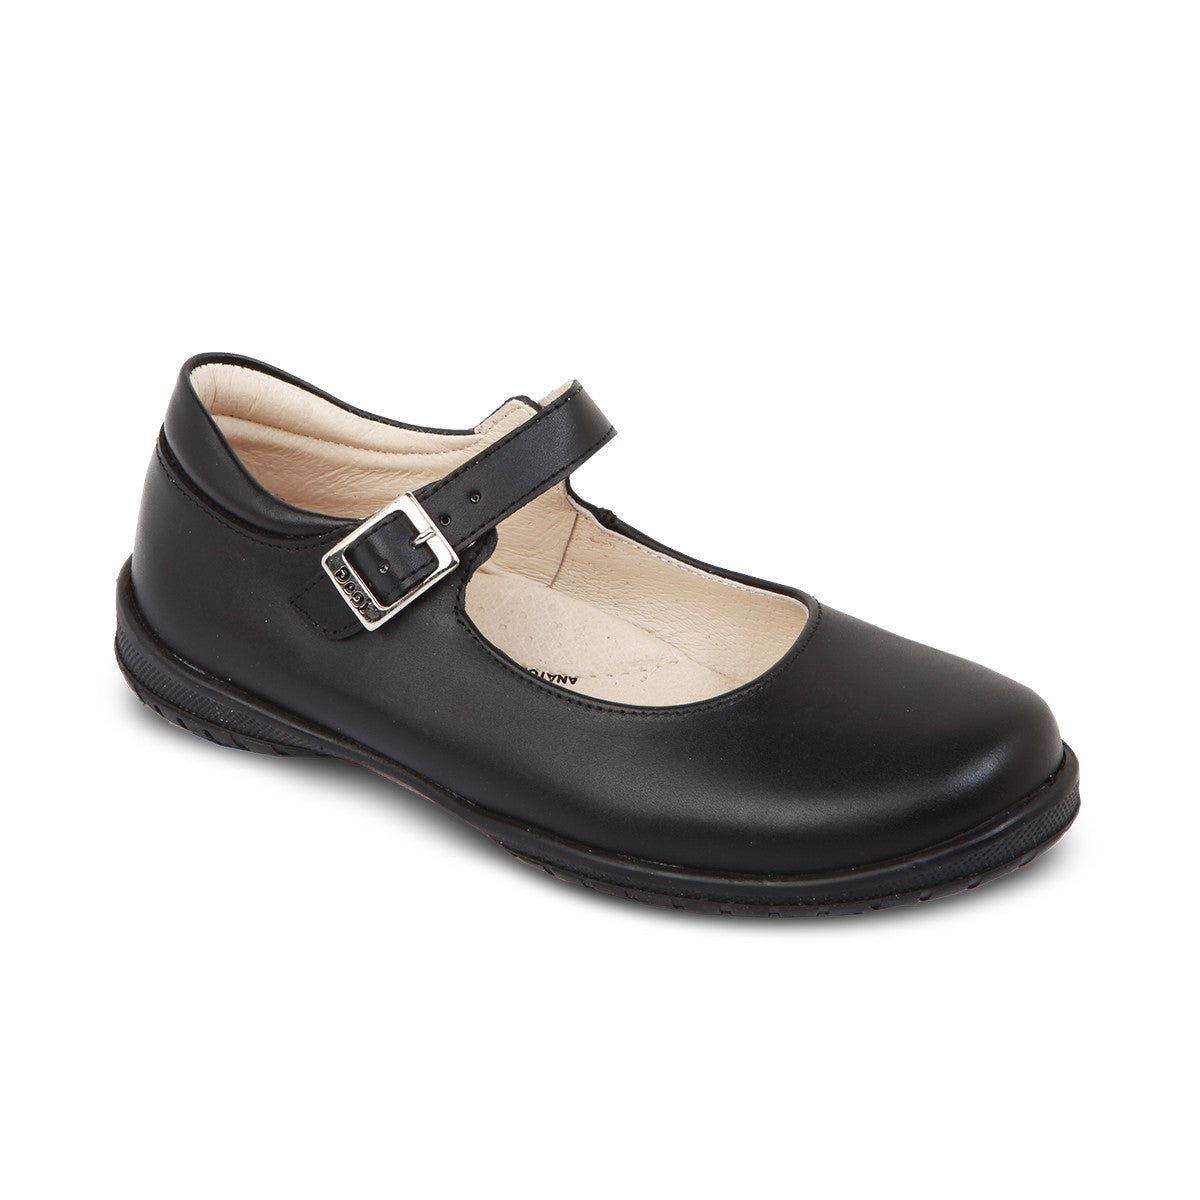 93641d5f70f DG-7410 - Black Genuine Leather - Dogi Kids School Shoes – Dogi Shoes